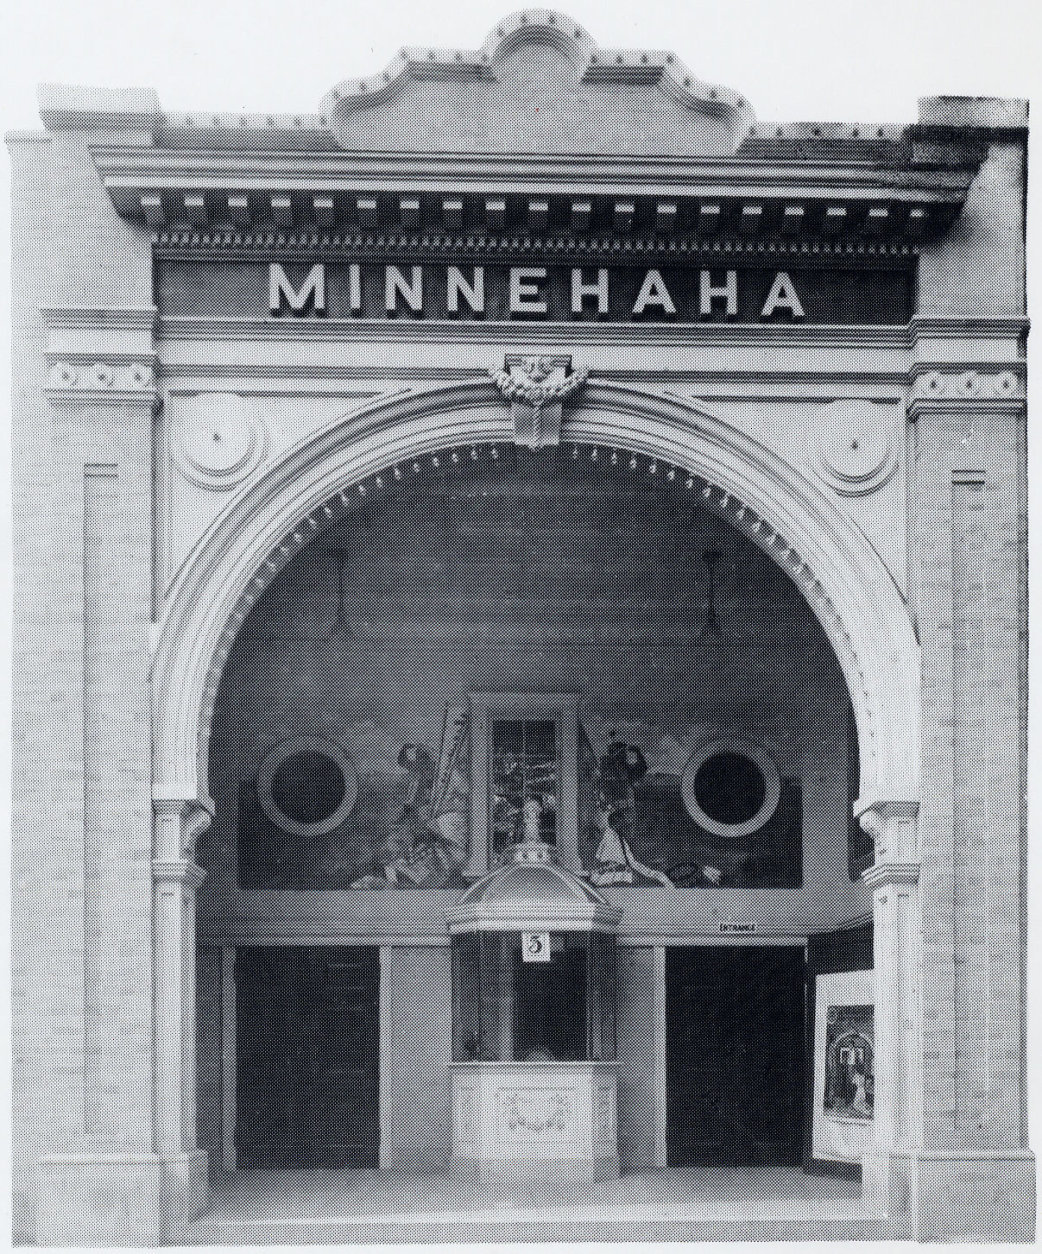 Ben's was a pool hall before the Alis opened their restaurent; before that, it was a silent movie theatre called the Minnehaha, built in 1922. (Courtesy of Ben's Chili Bowl)